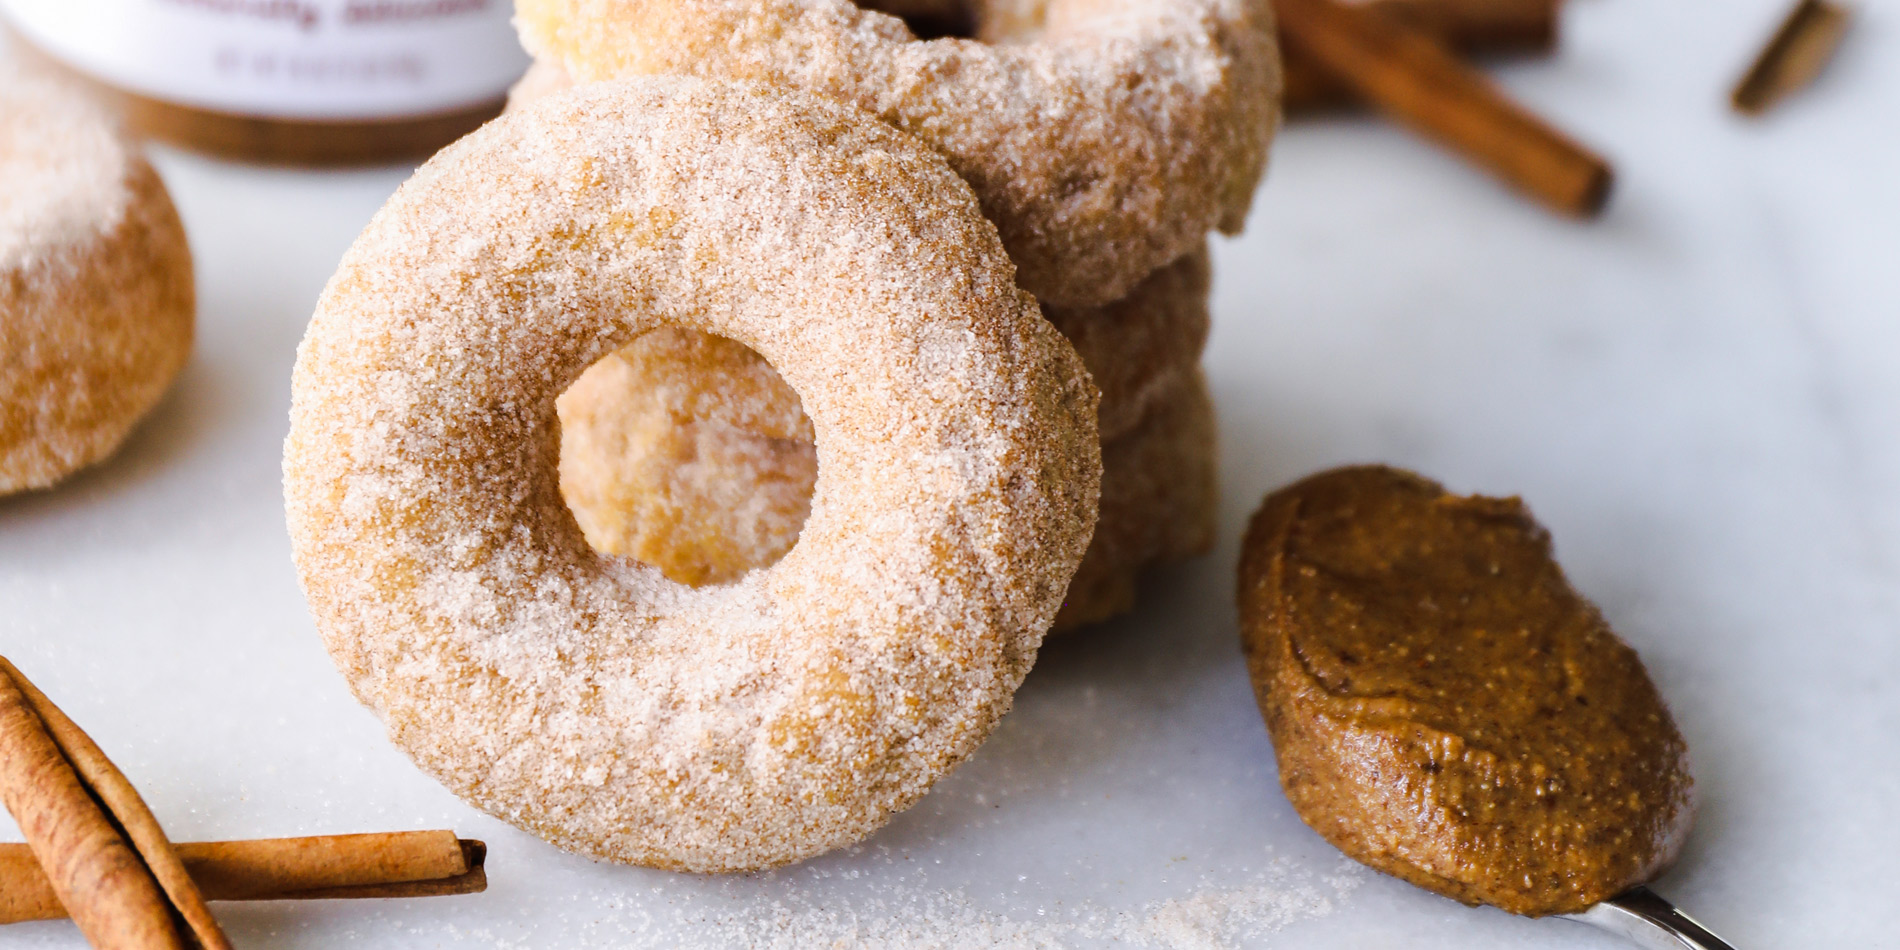 Baked Cinnamon Almond Butter Churro Doughnuts with cinnamon sticks in the background on a white background